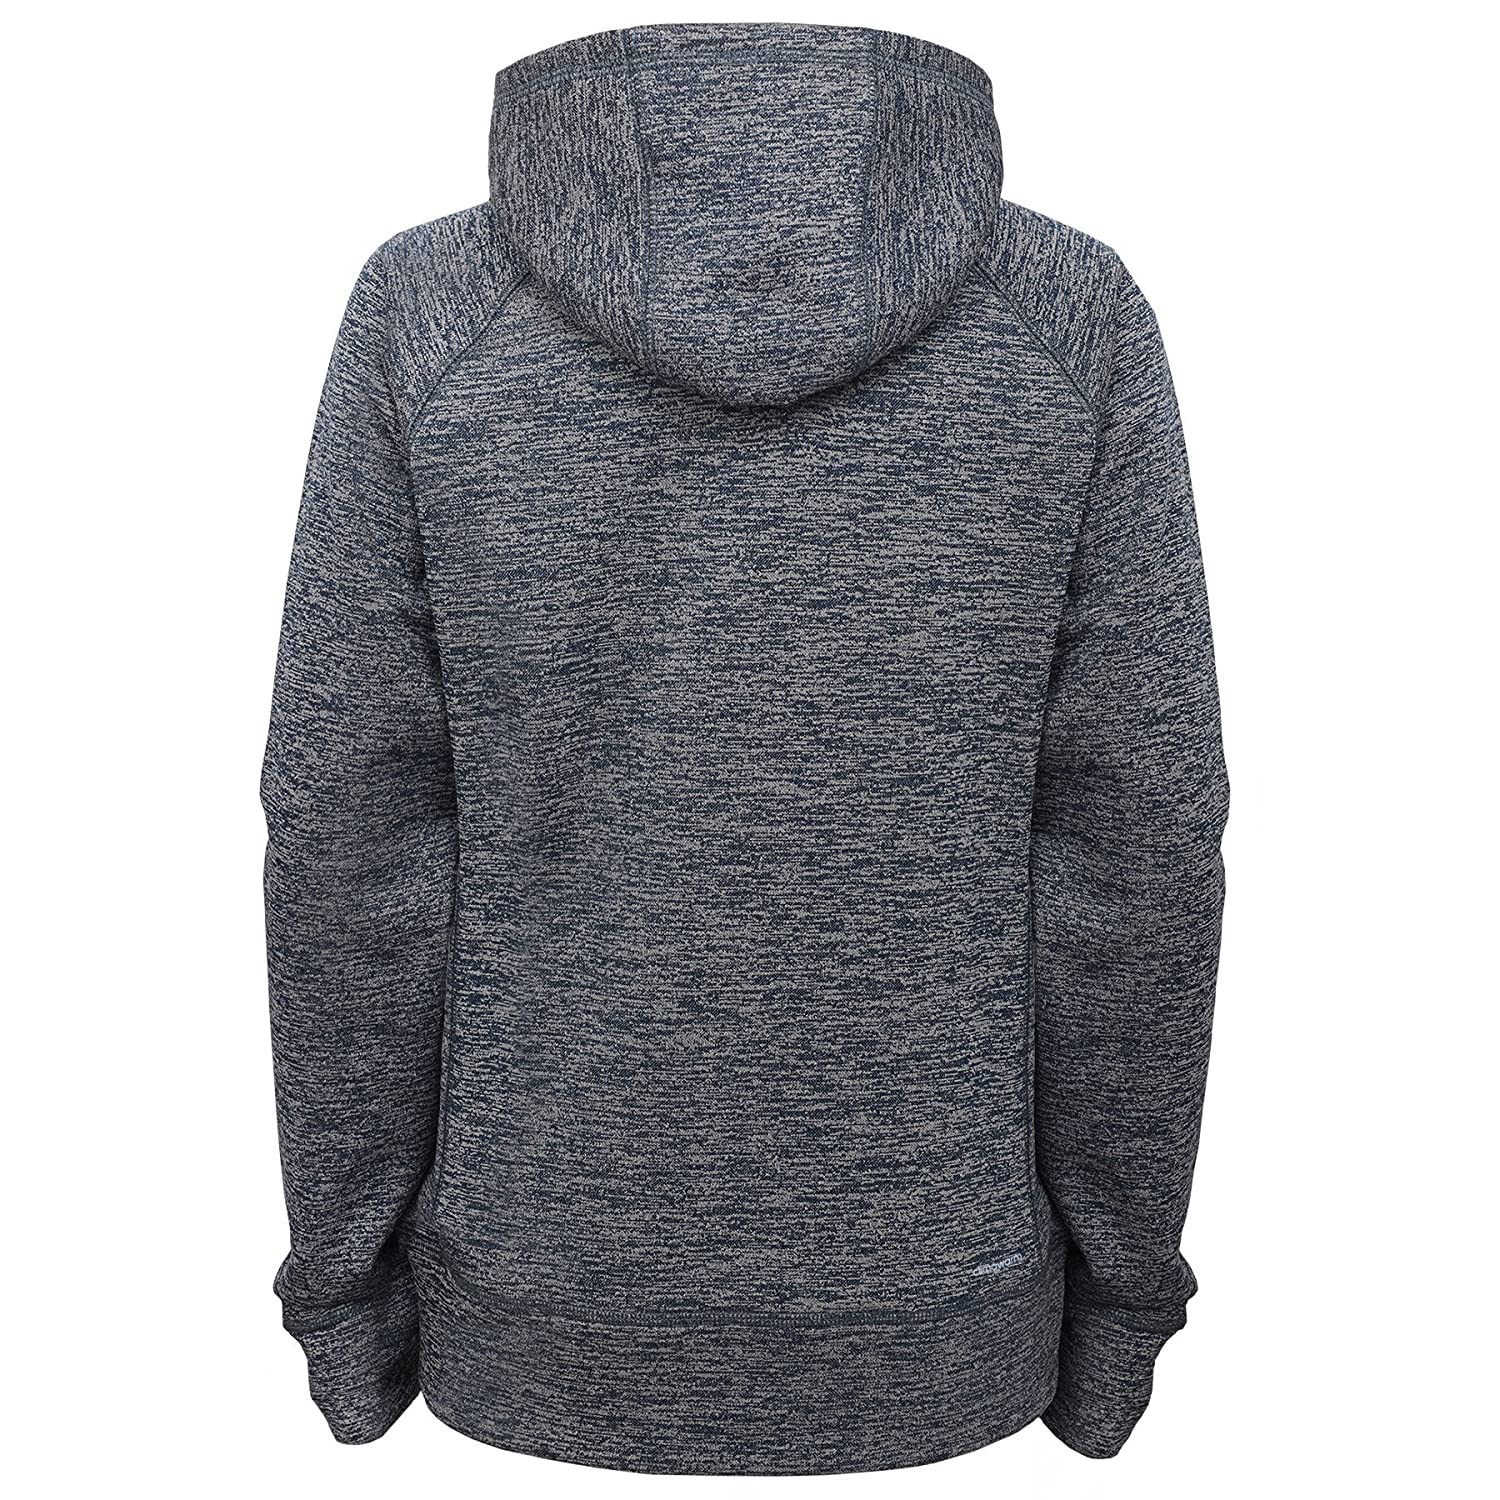 MLS by Outerstuff Bottom Pill Performance Hoodie Youth Girls X-Large Charcoal Grey 16